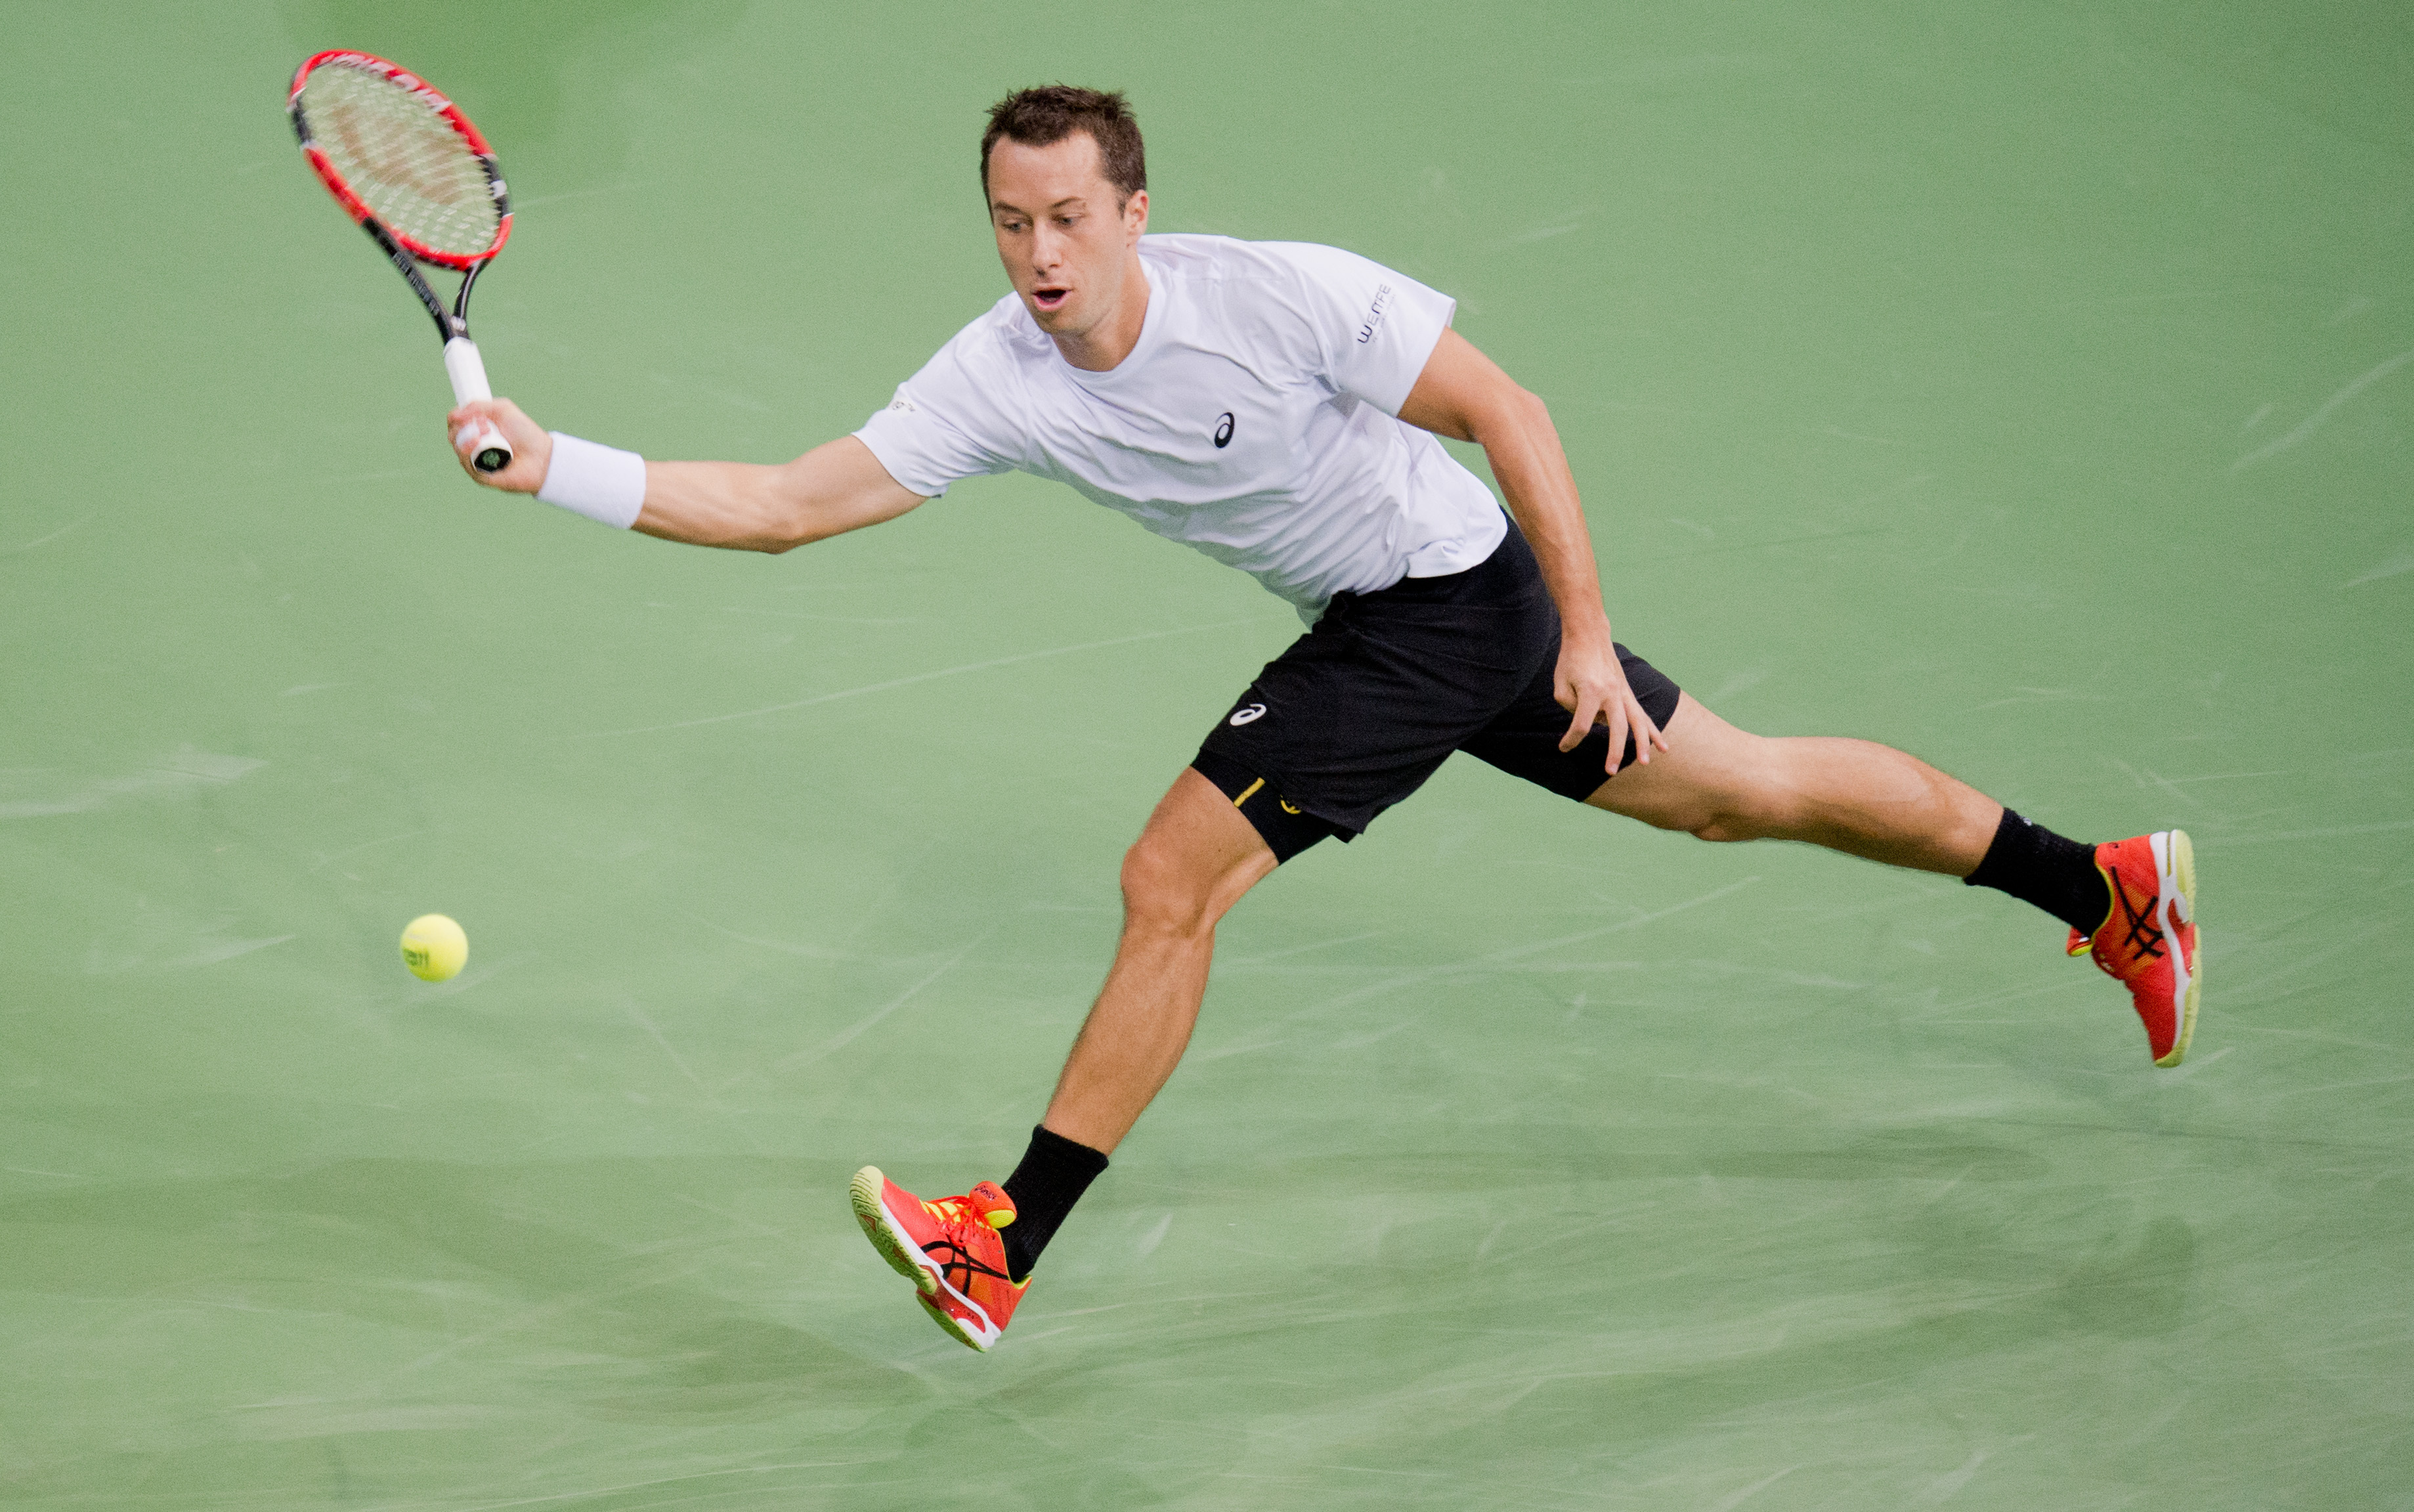 Germany's Philipp Kohlschreiber  returns a ball   during  his  match against Czech Republic's  Lukas Rosol at the World Group first round match  of the Davis Cup  in Hannover, Germany,  Friday March 4, 2016.  (Julian Stratenschulte/dpa via AP)